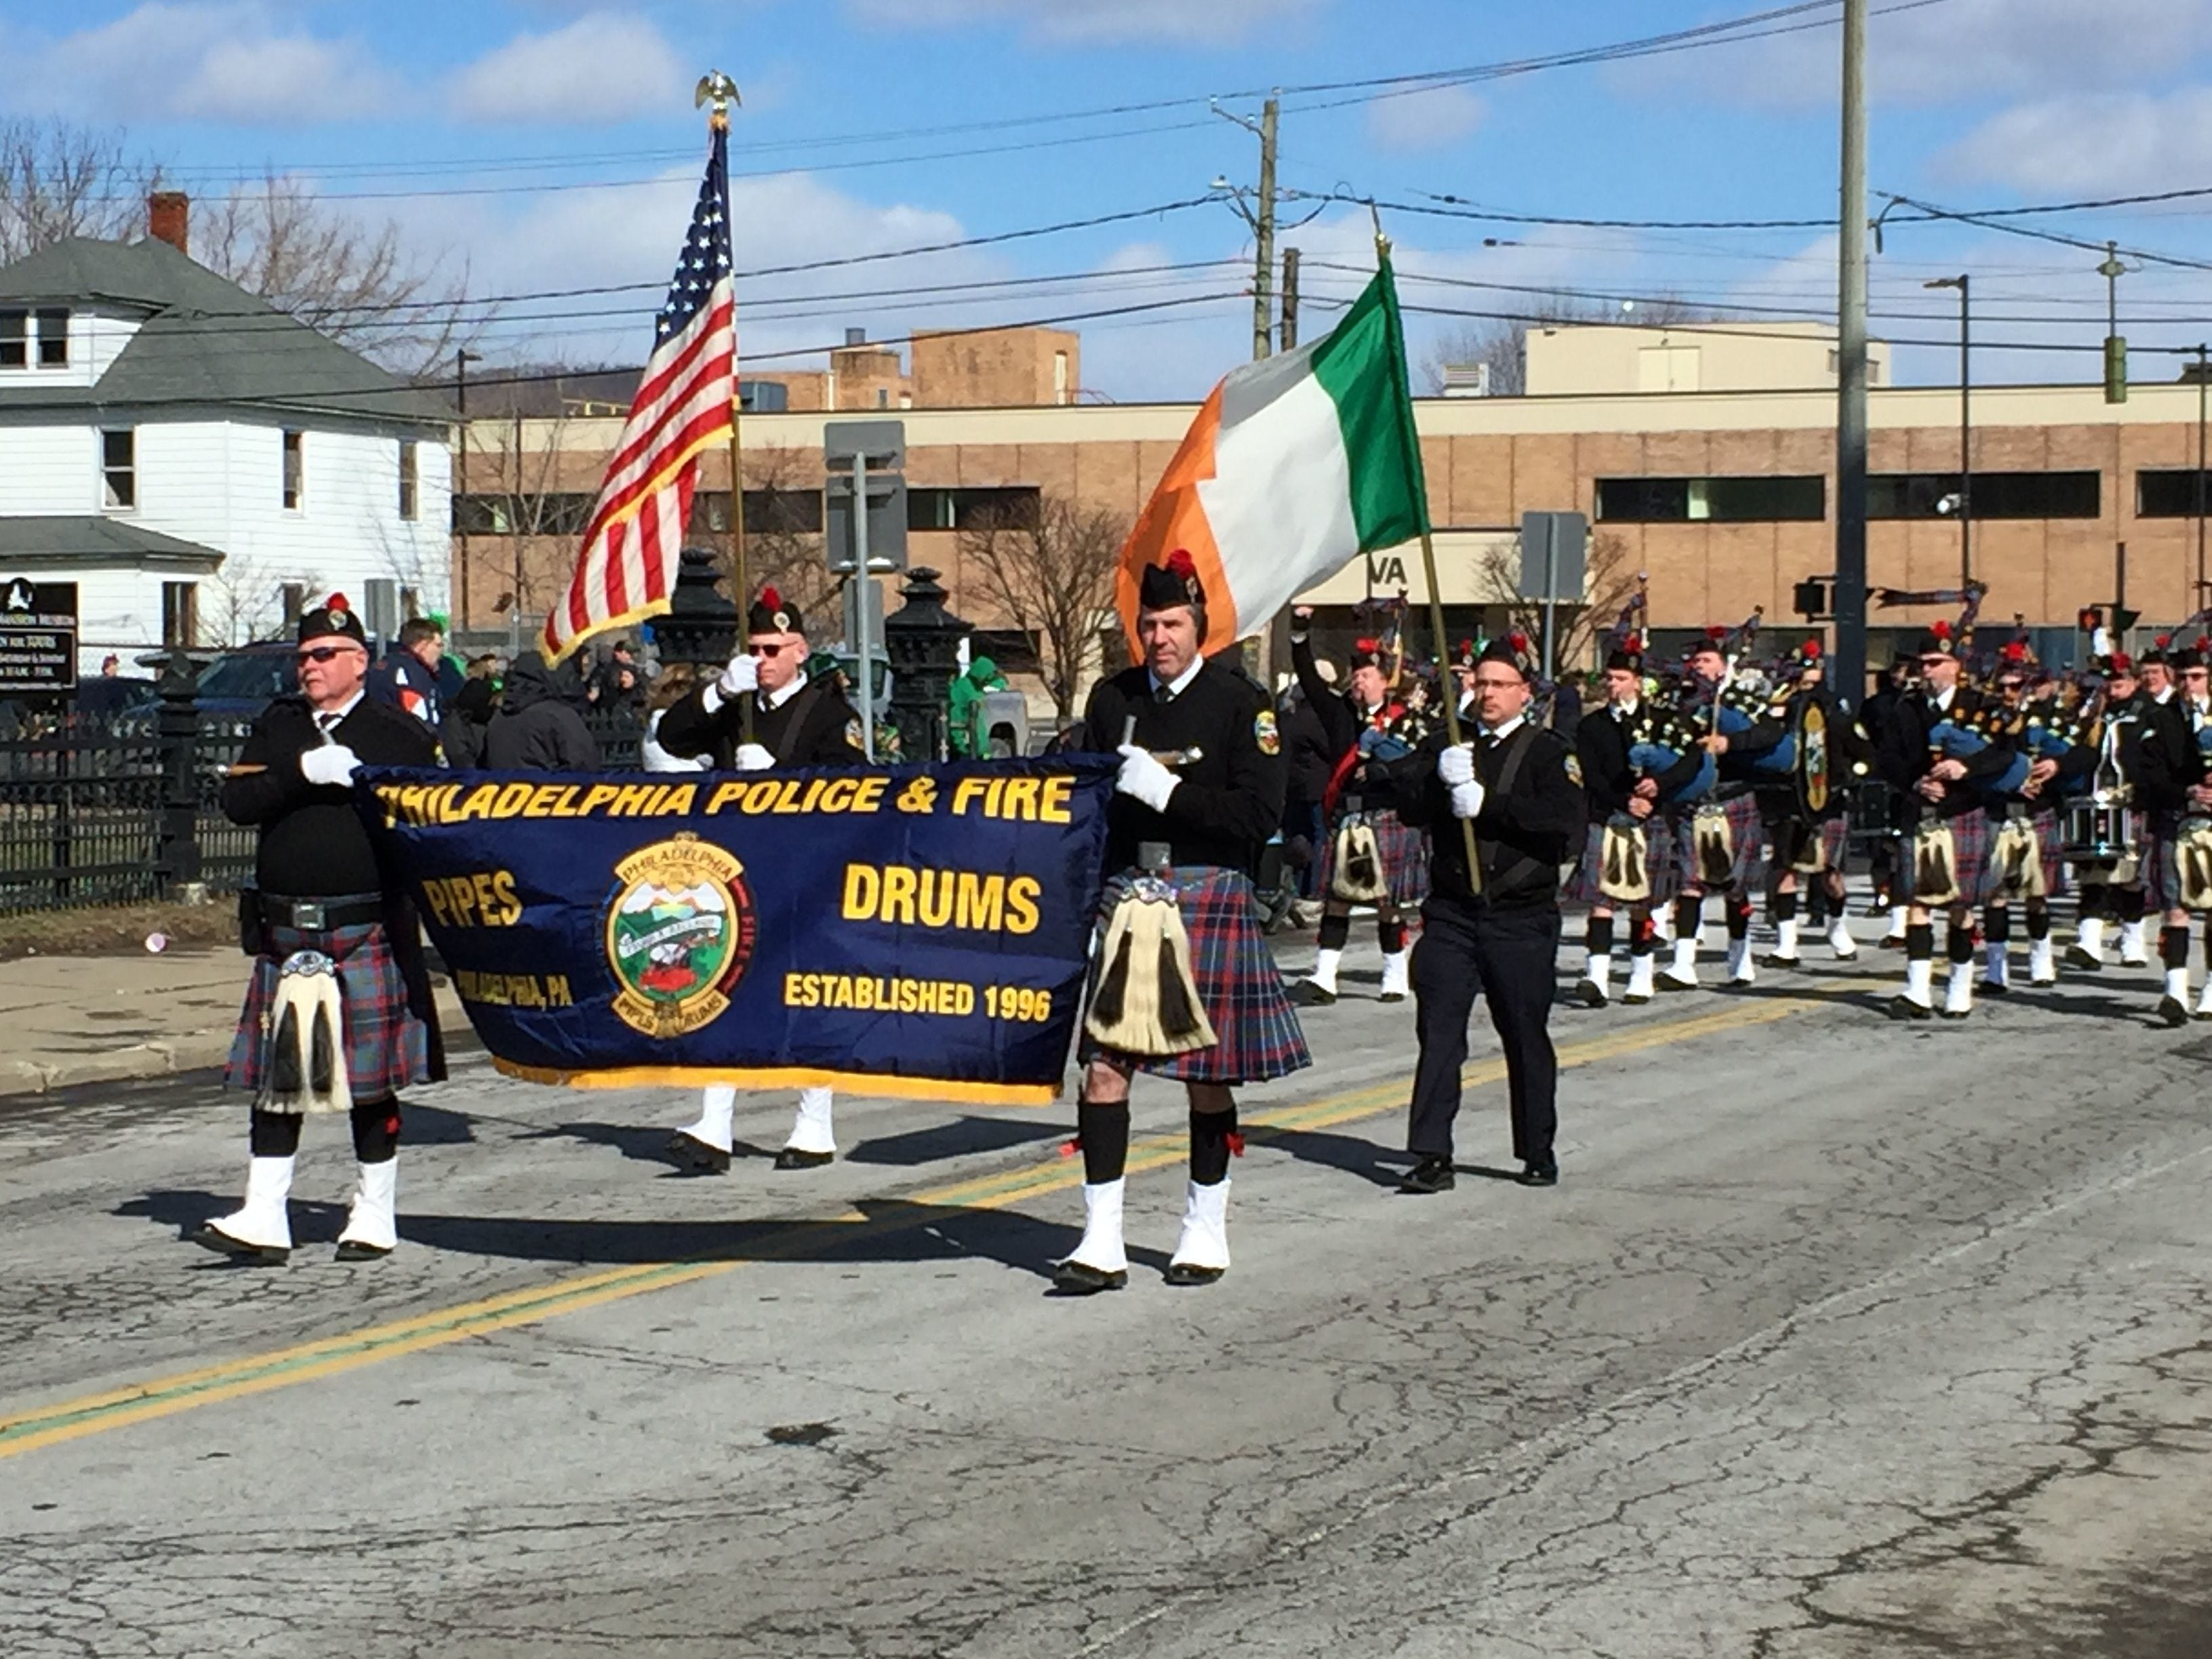 2017: A St. Patrick's Day parade wouldn't be complete without bagpipe bands. There were several bagpipe bands at the parade.